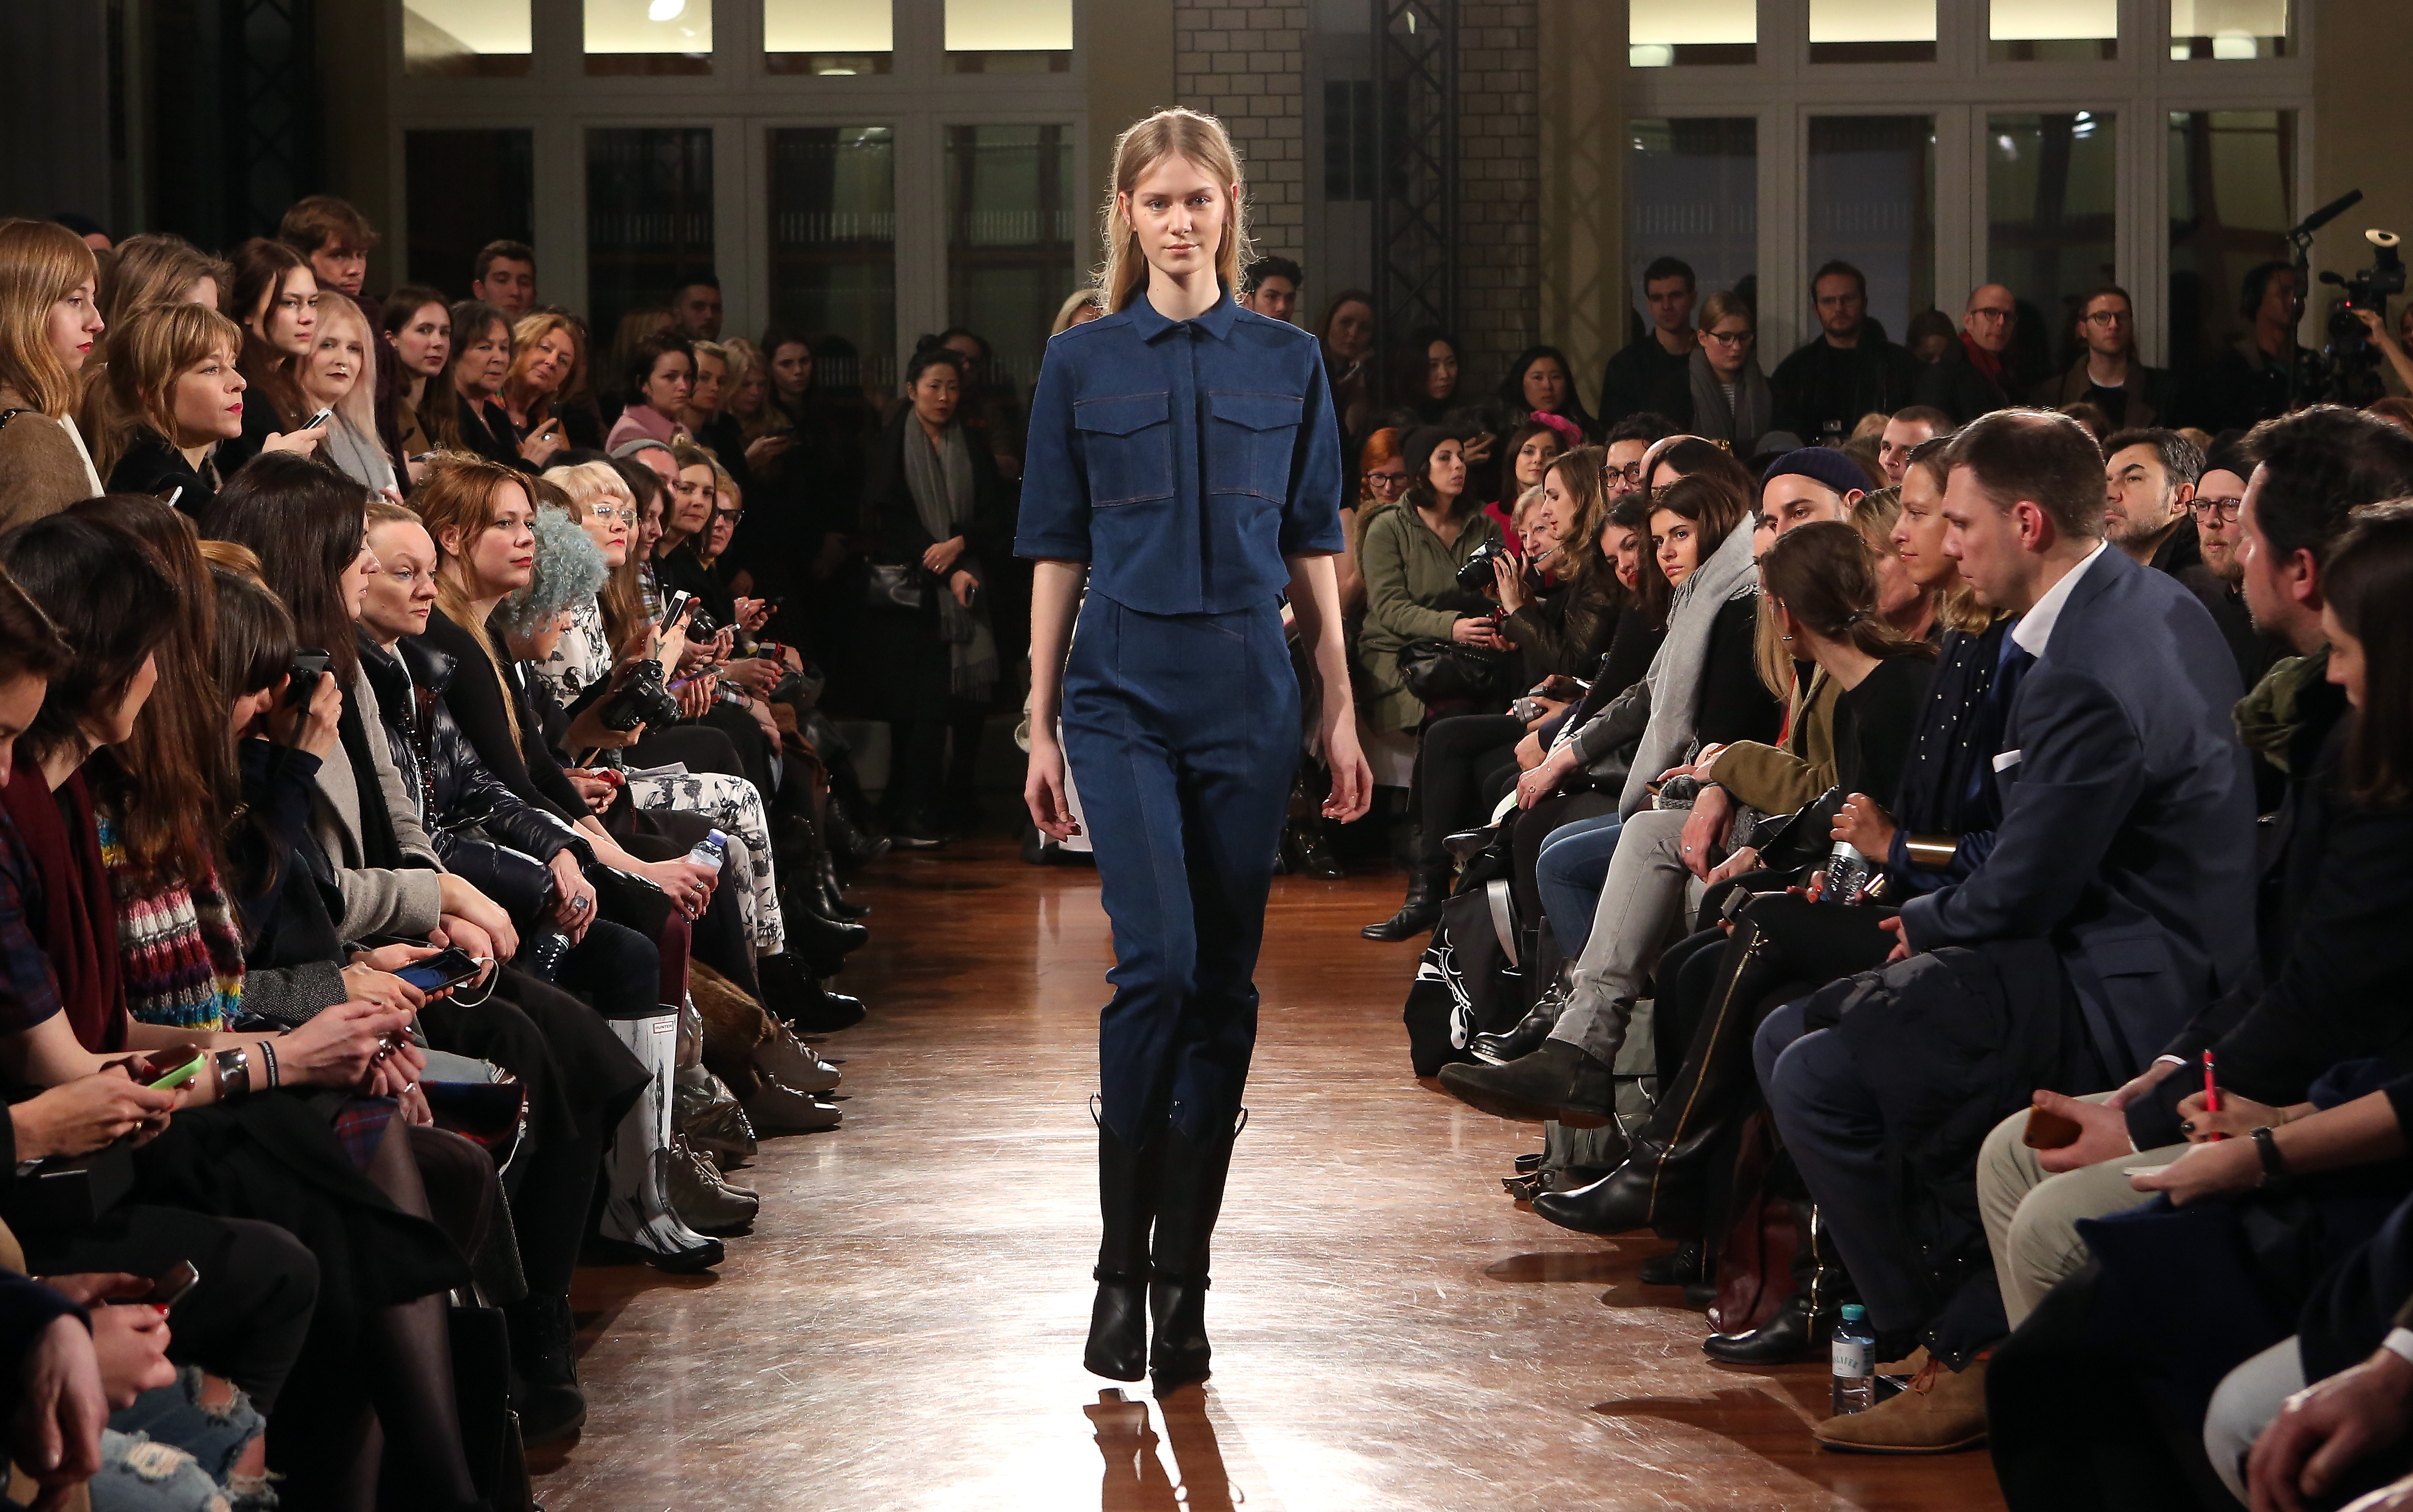 Malaikaraiss Show - Mercedes-Benz Fashion Week Berlin Autumn/Winter 2015/16